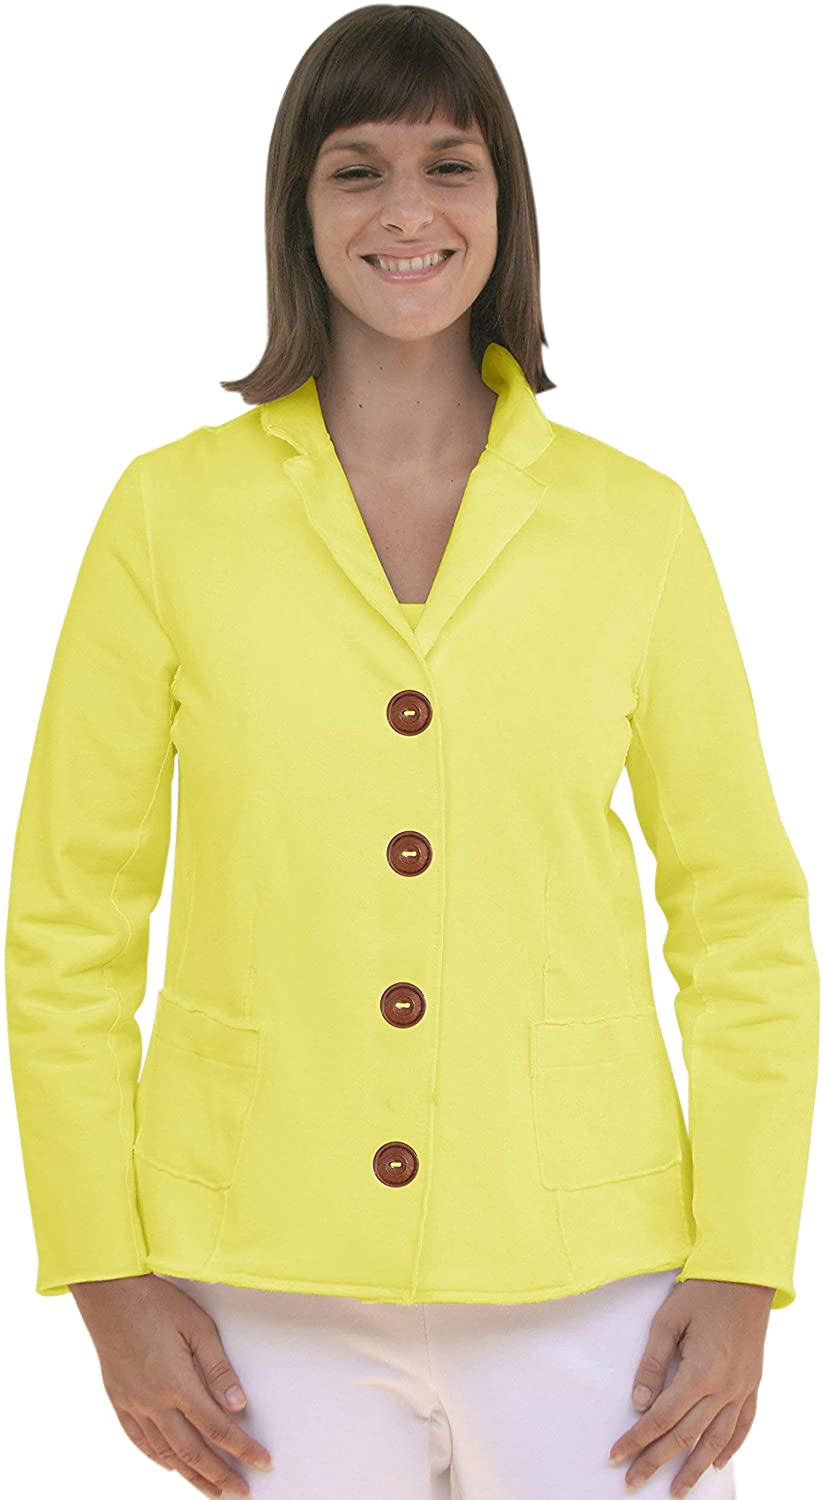 Neon Buddha Women's Lapel Collar Jacket Female Cotton Top with Pockets, Big Buttons and Exposed Seams